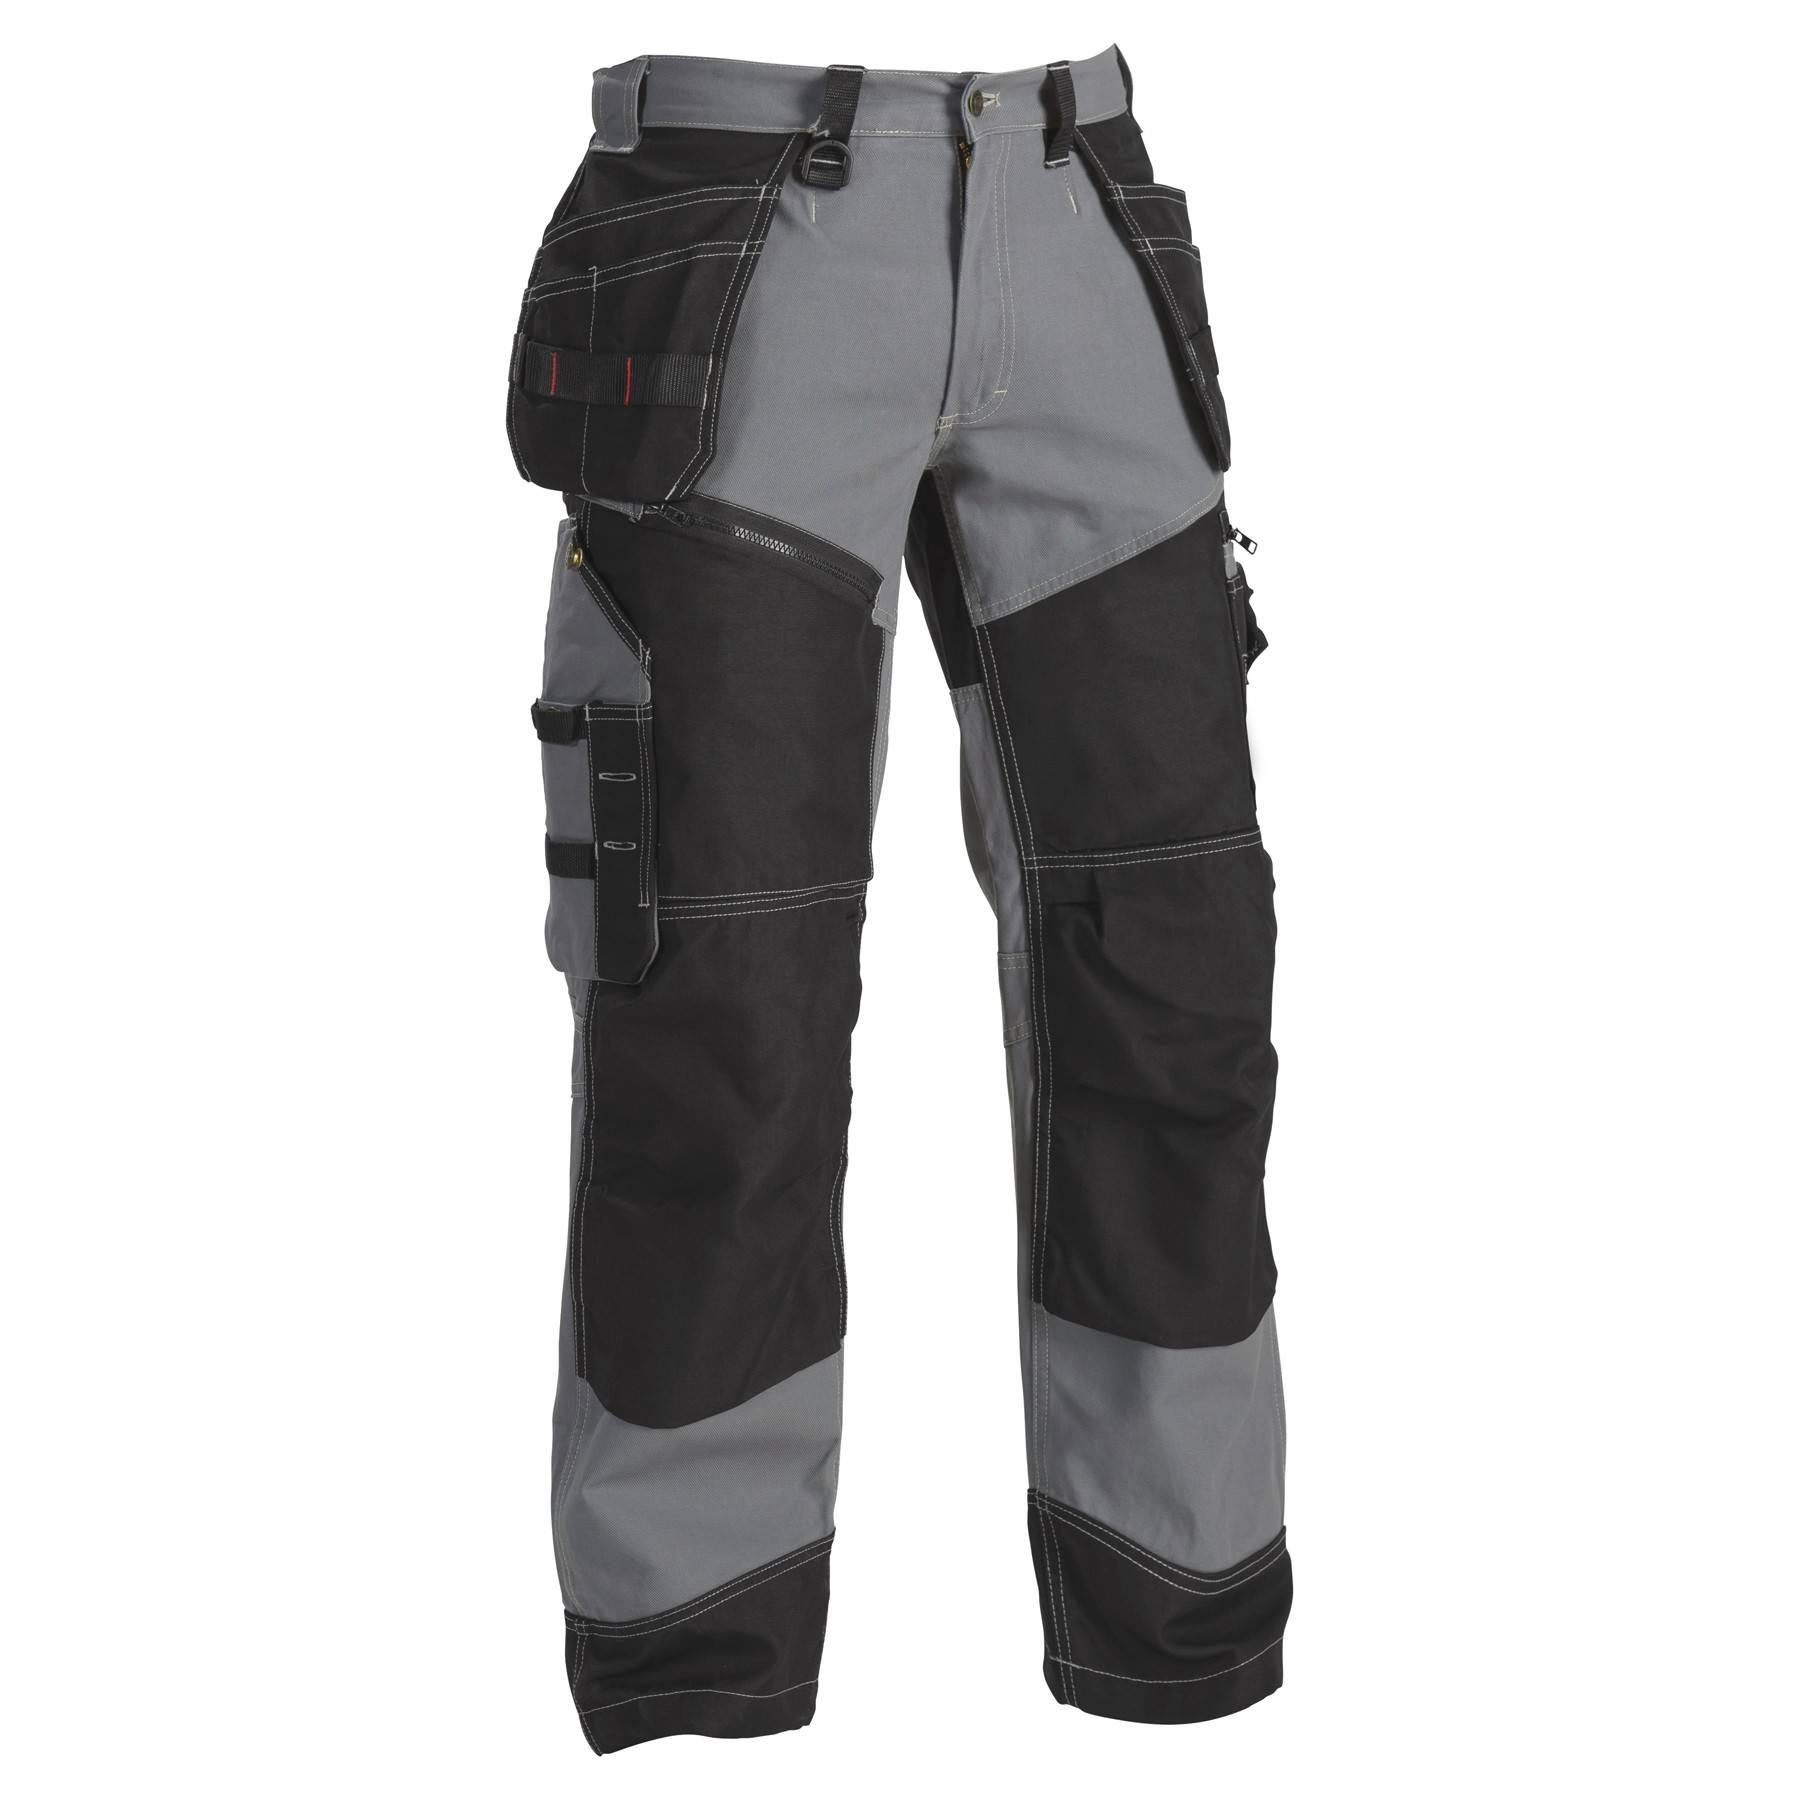 High quality Multifunctional Canvas Cargo Pants